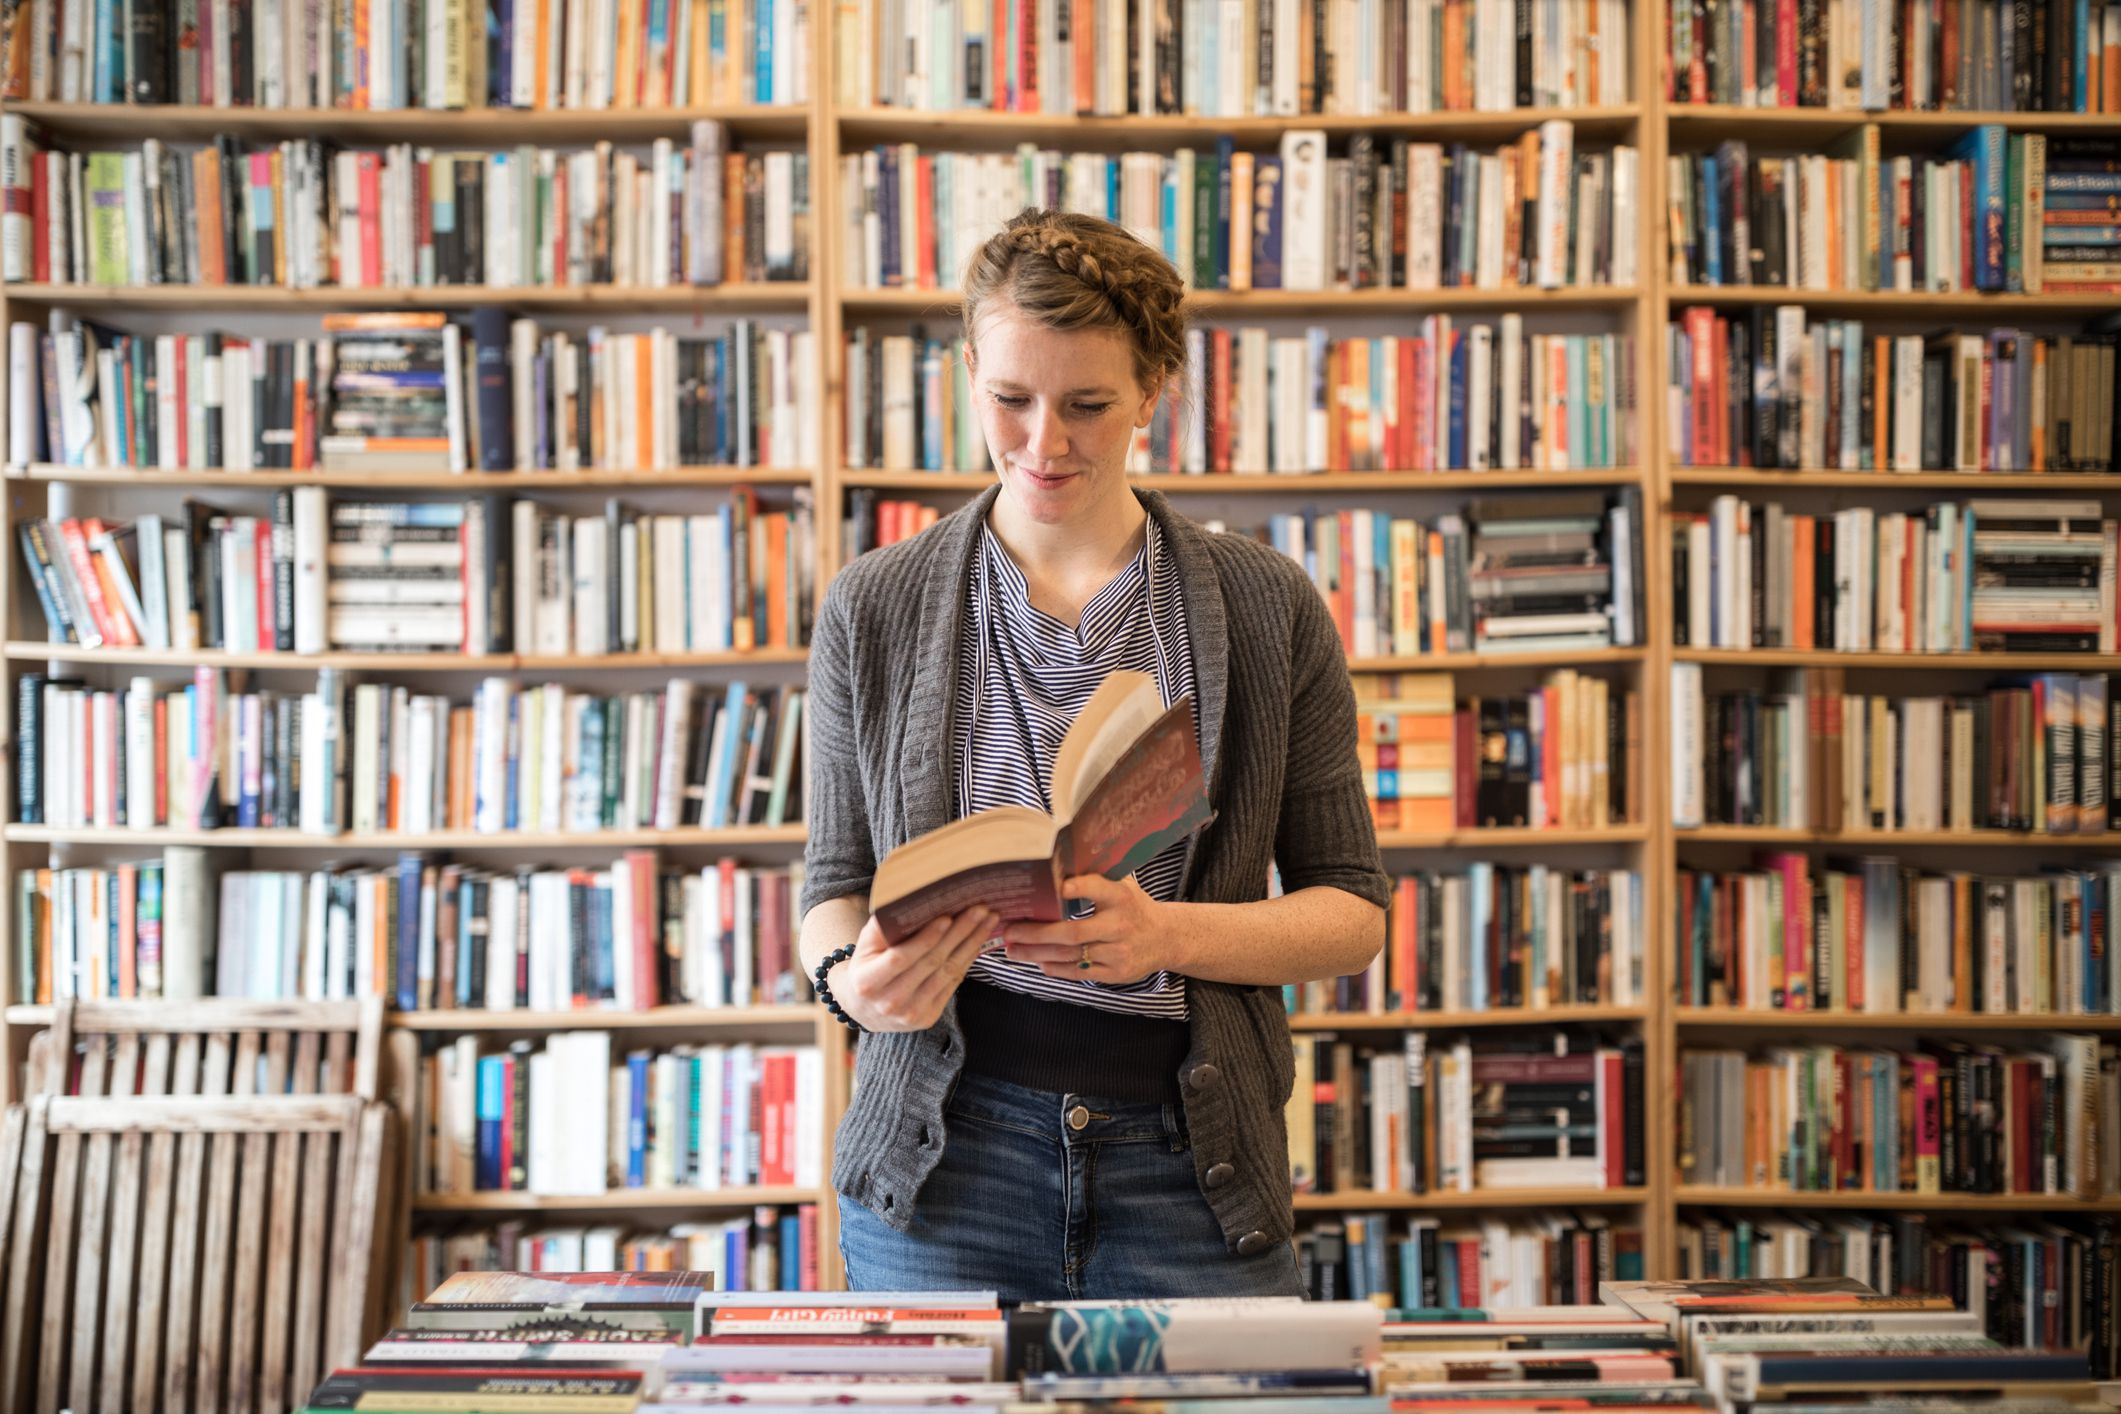 Change the Way You Think About Your Money With These 4 Books